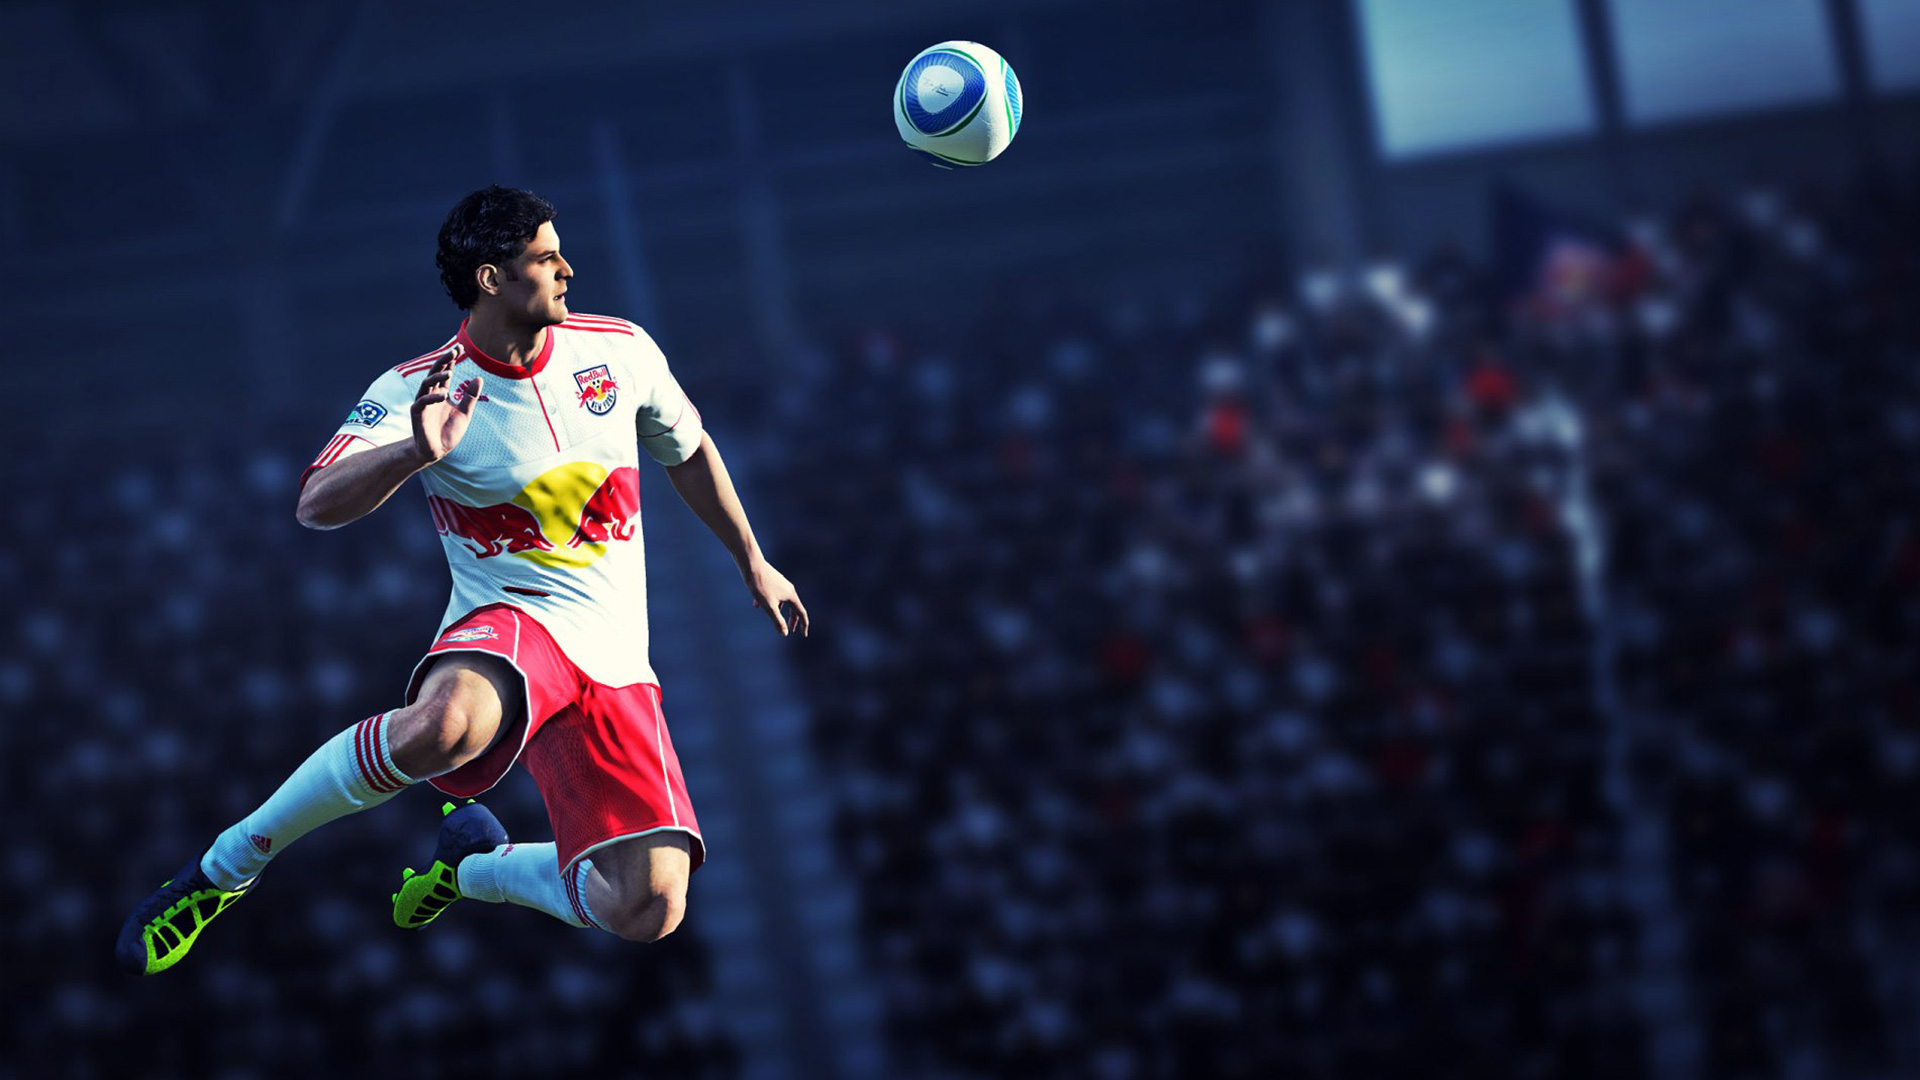 Free FIFA 12 Wallpaper in 1920x1080